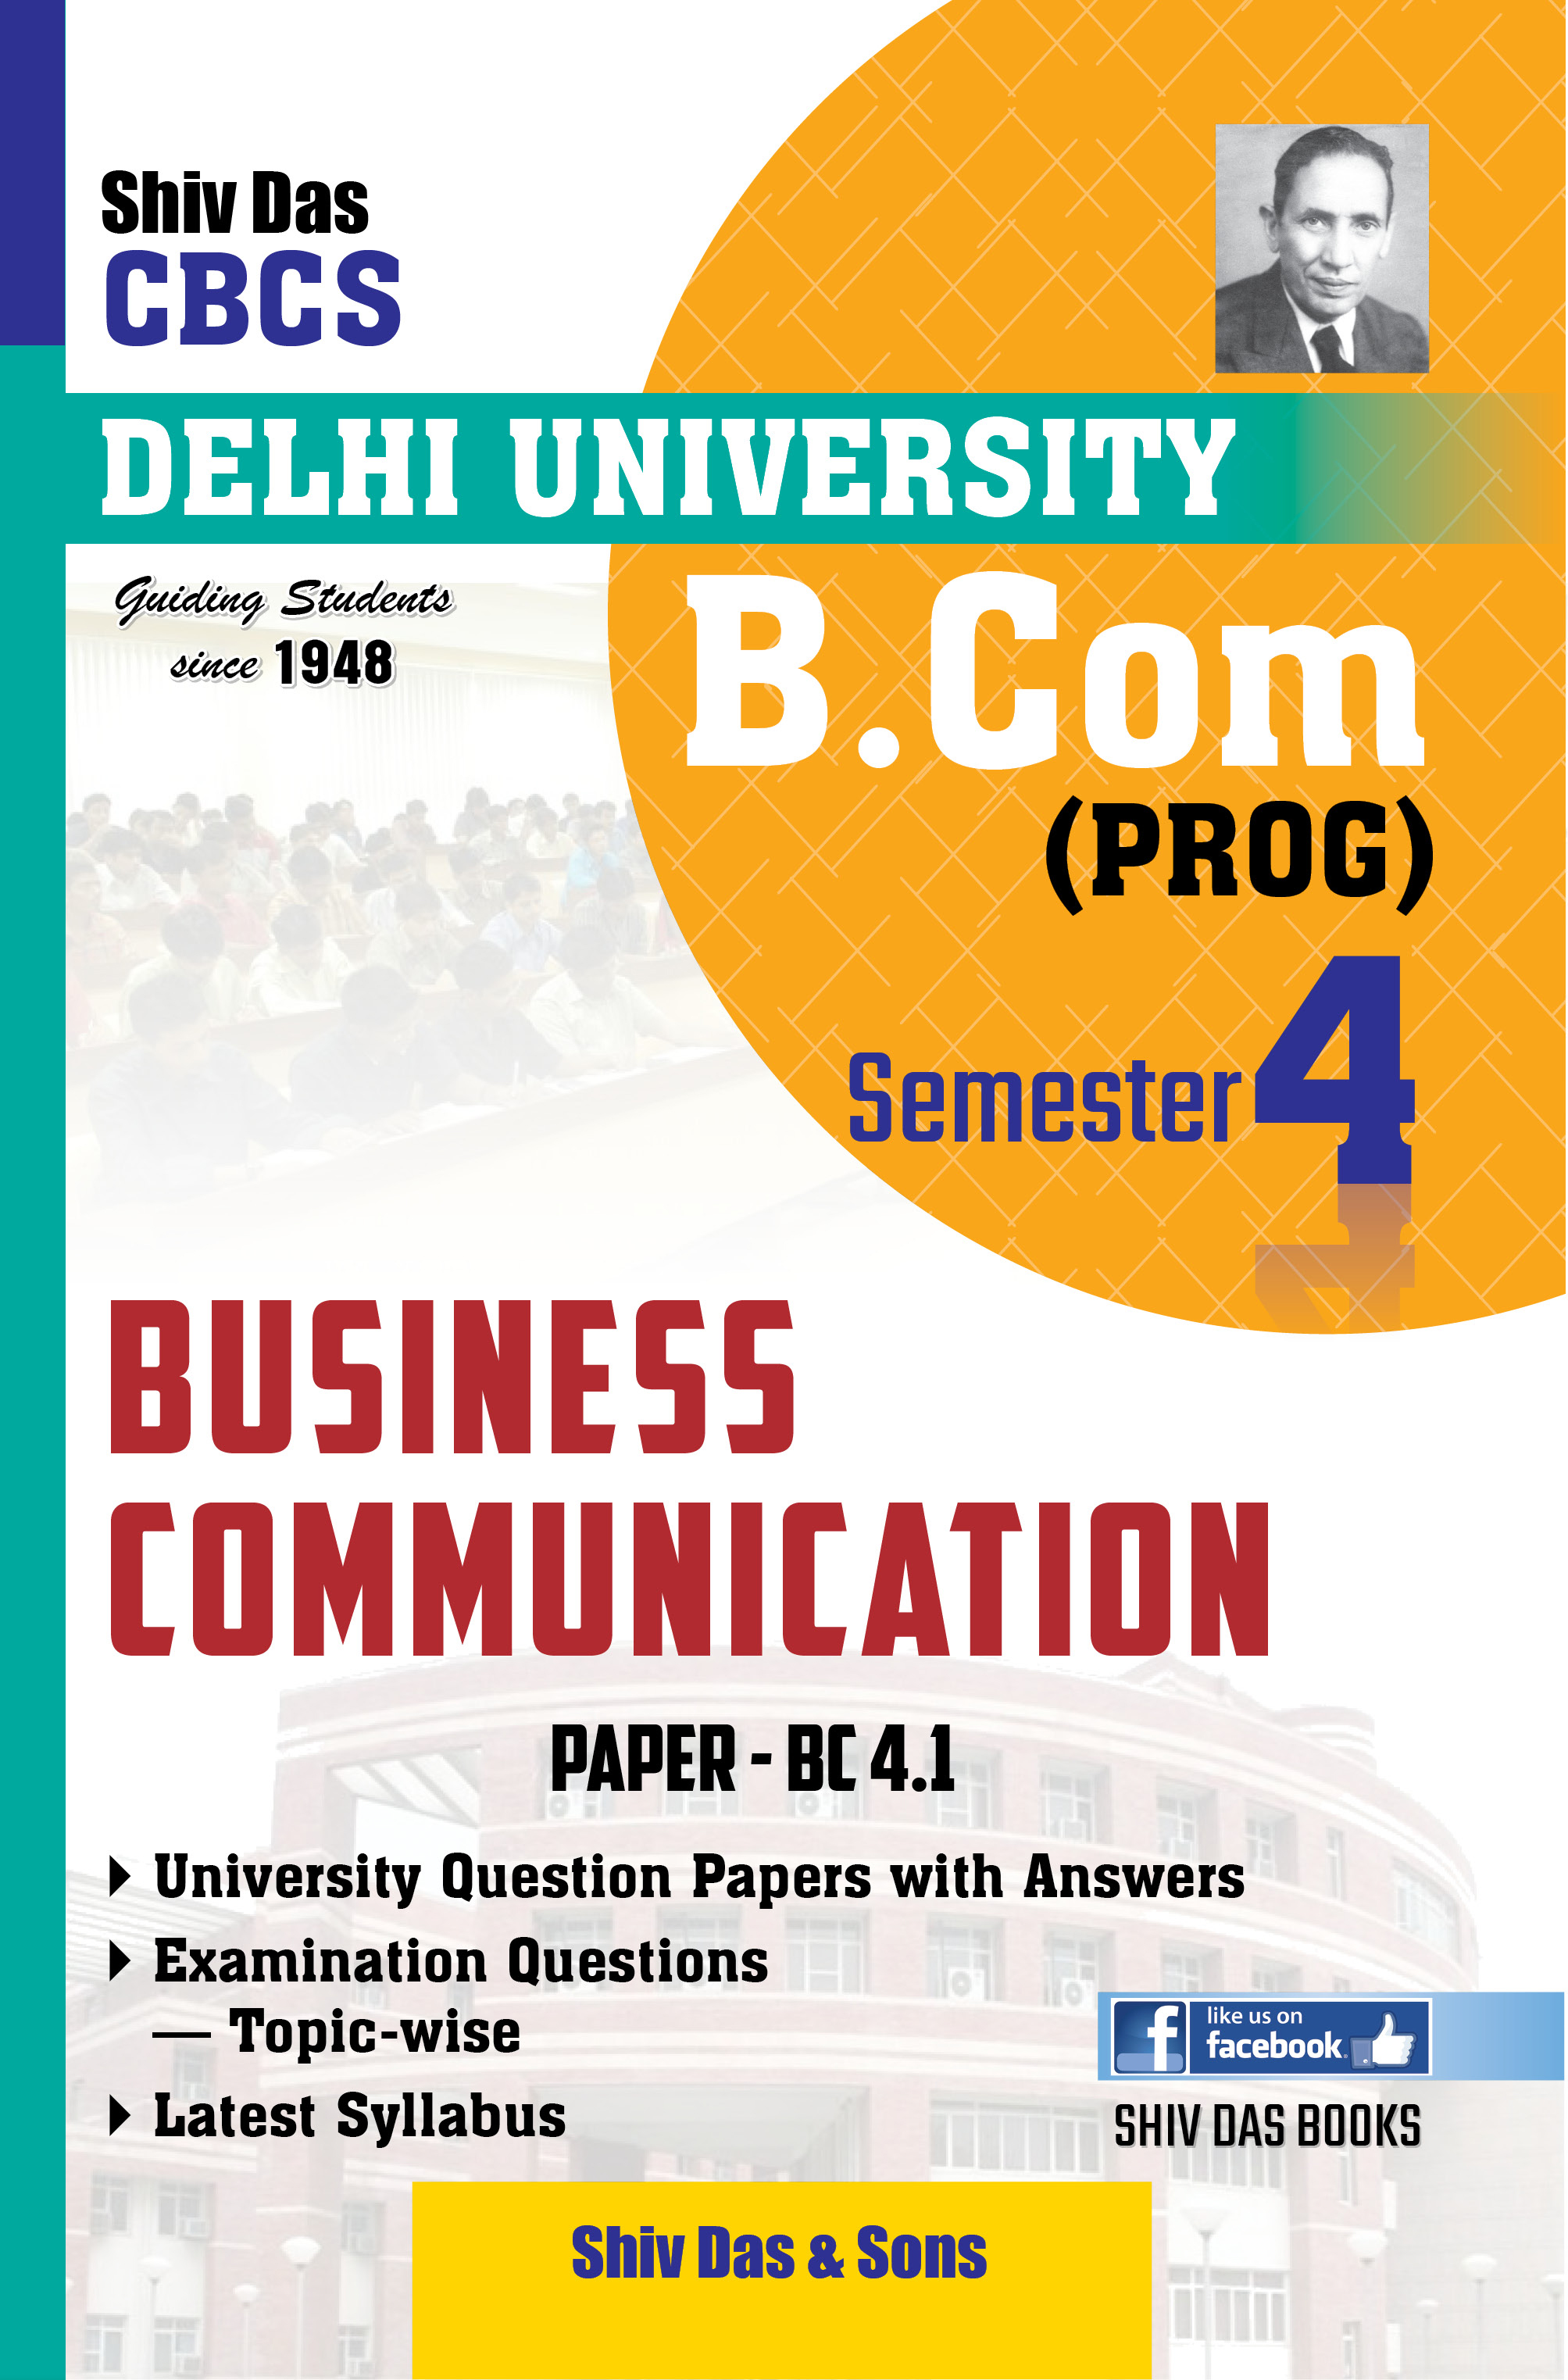 Business Communication for B.Com Prog Semester - 4